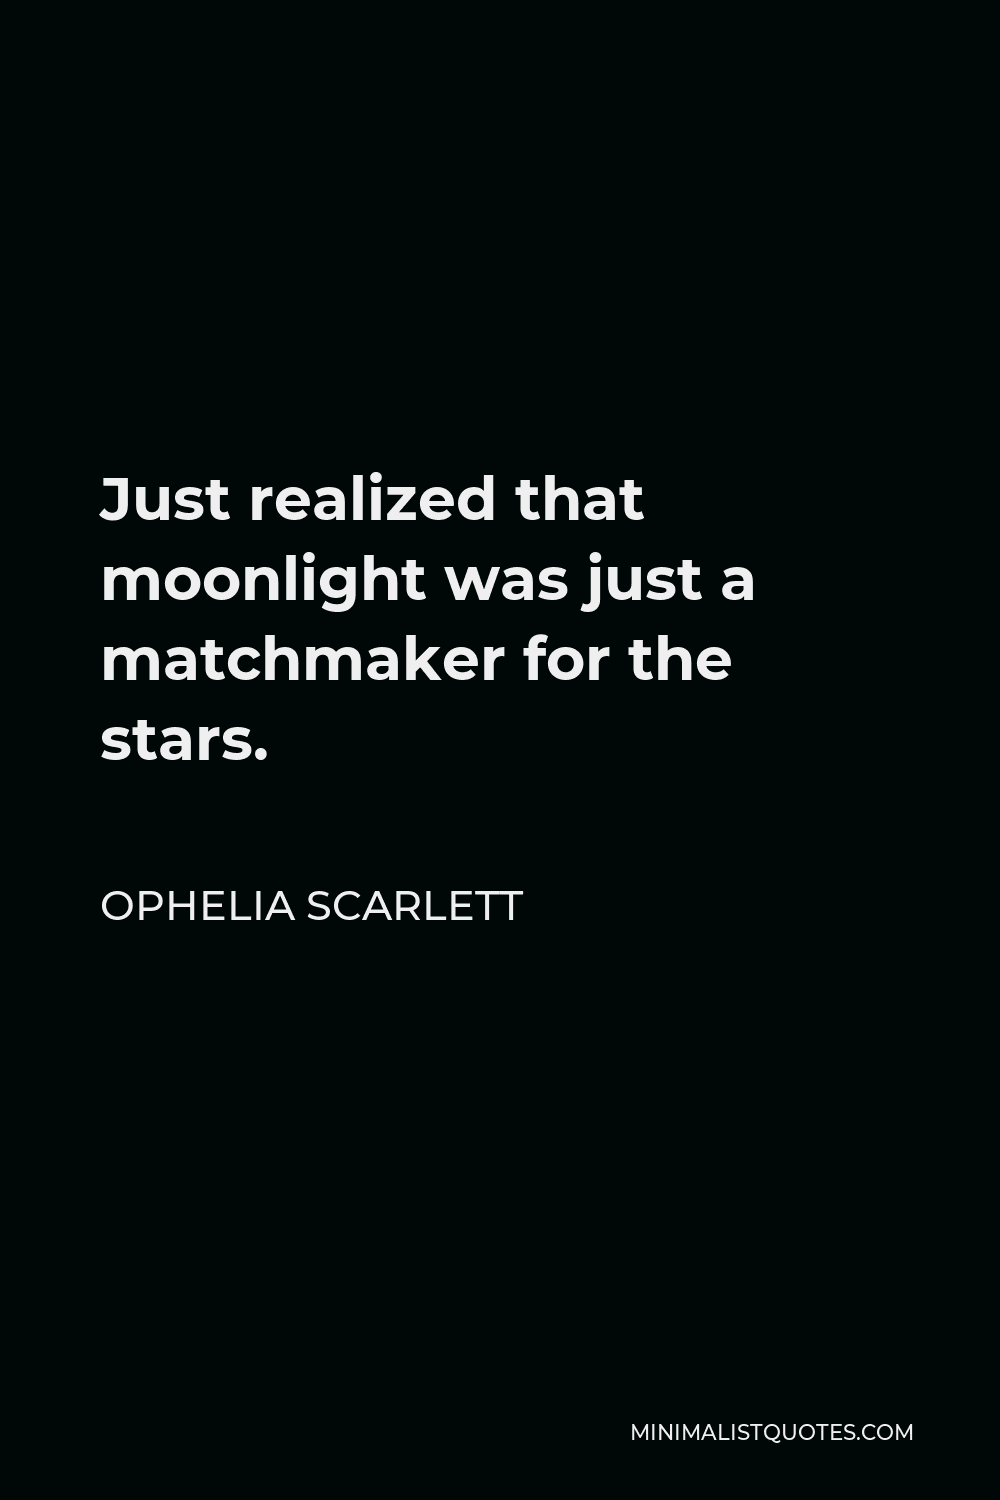 Ophelia Scarlett Quote - Just realized that moonlight was just a matchmaker for the stars.